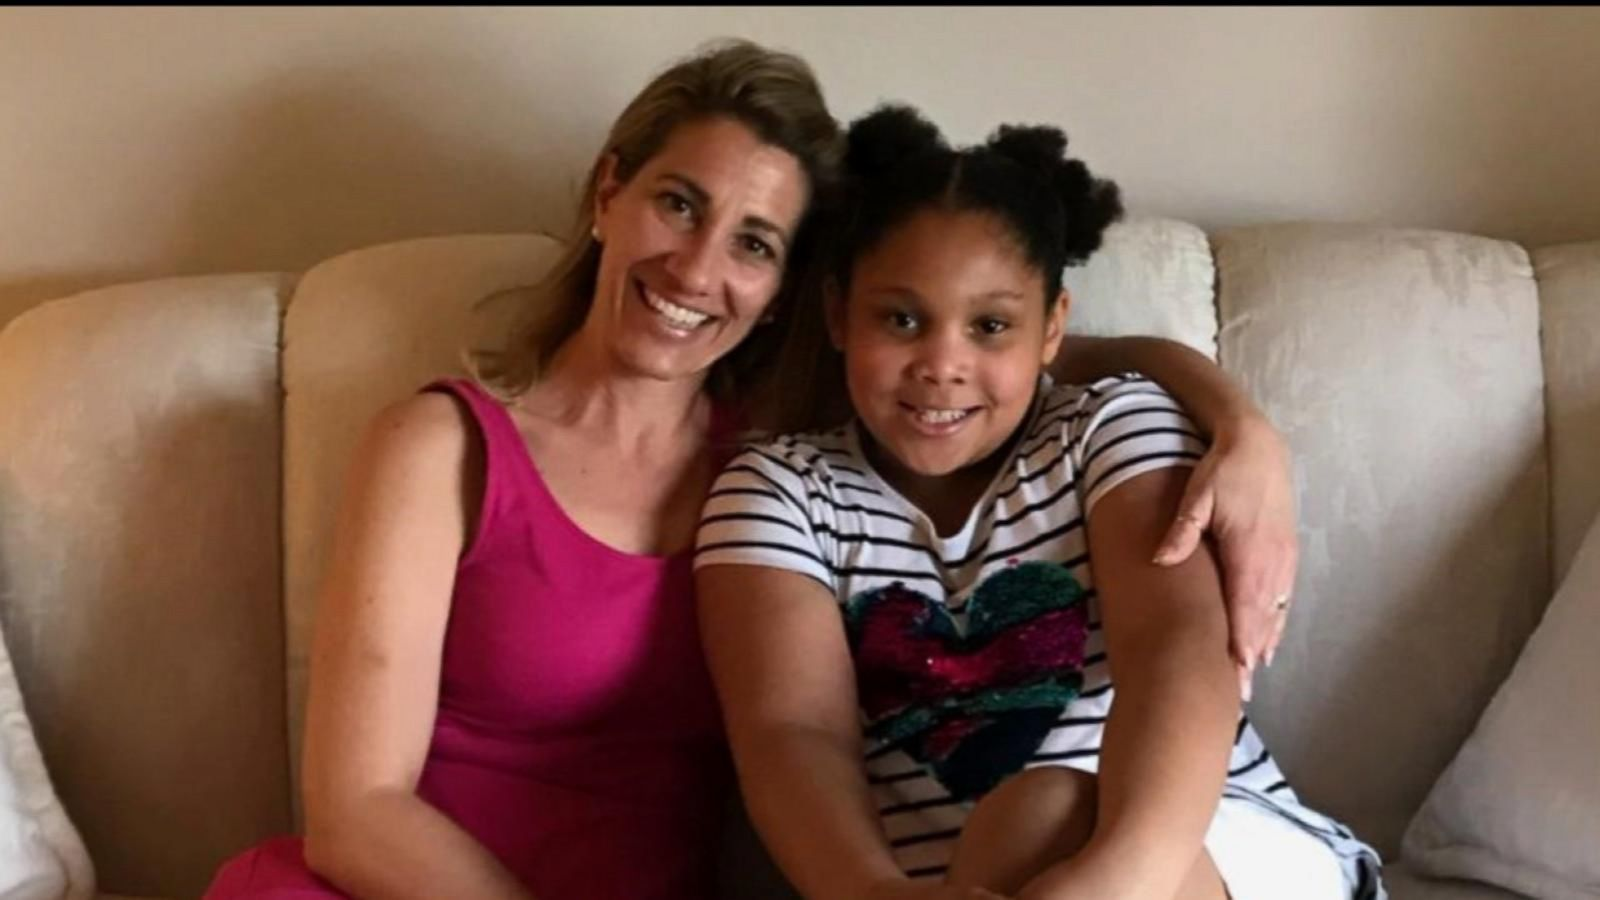 Ohio teacher to donate kidney to 10-year-old girl - ABC News